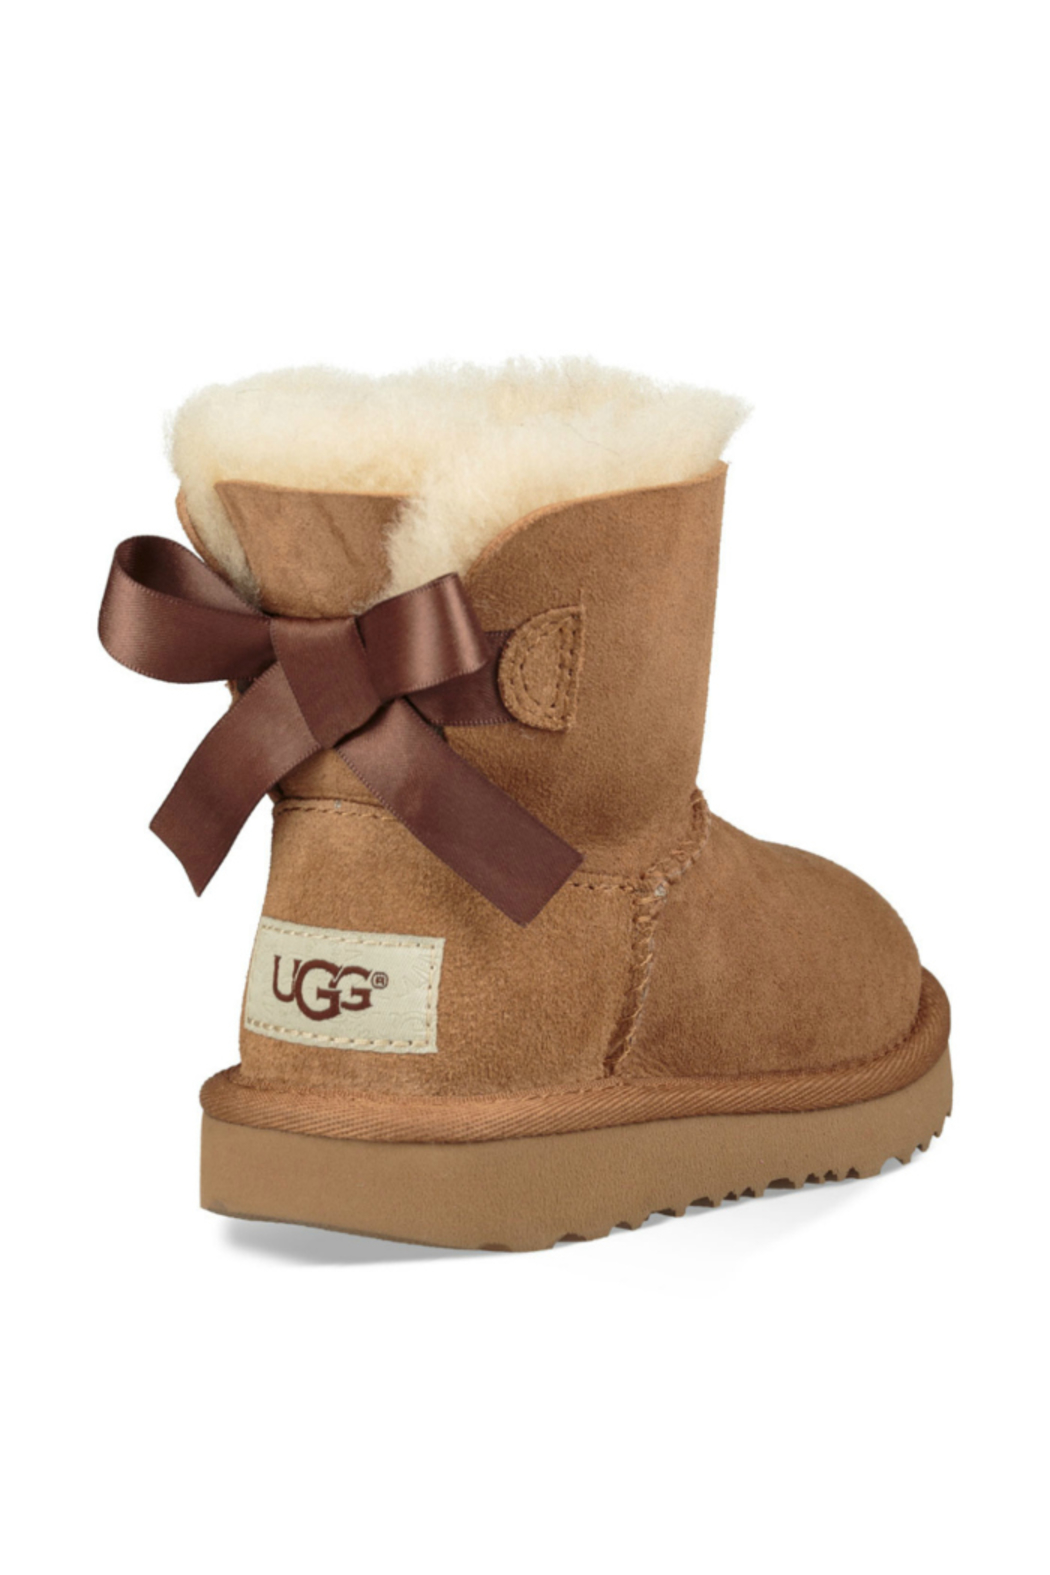 3dee90e8daa Ugg TODDLER MINI BAILEY BOW from New Jersey by Suburban Shoes ...